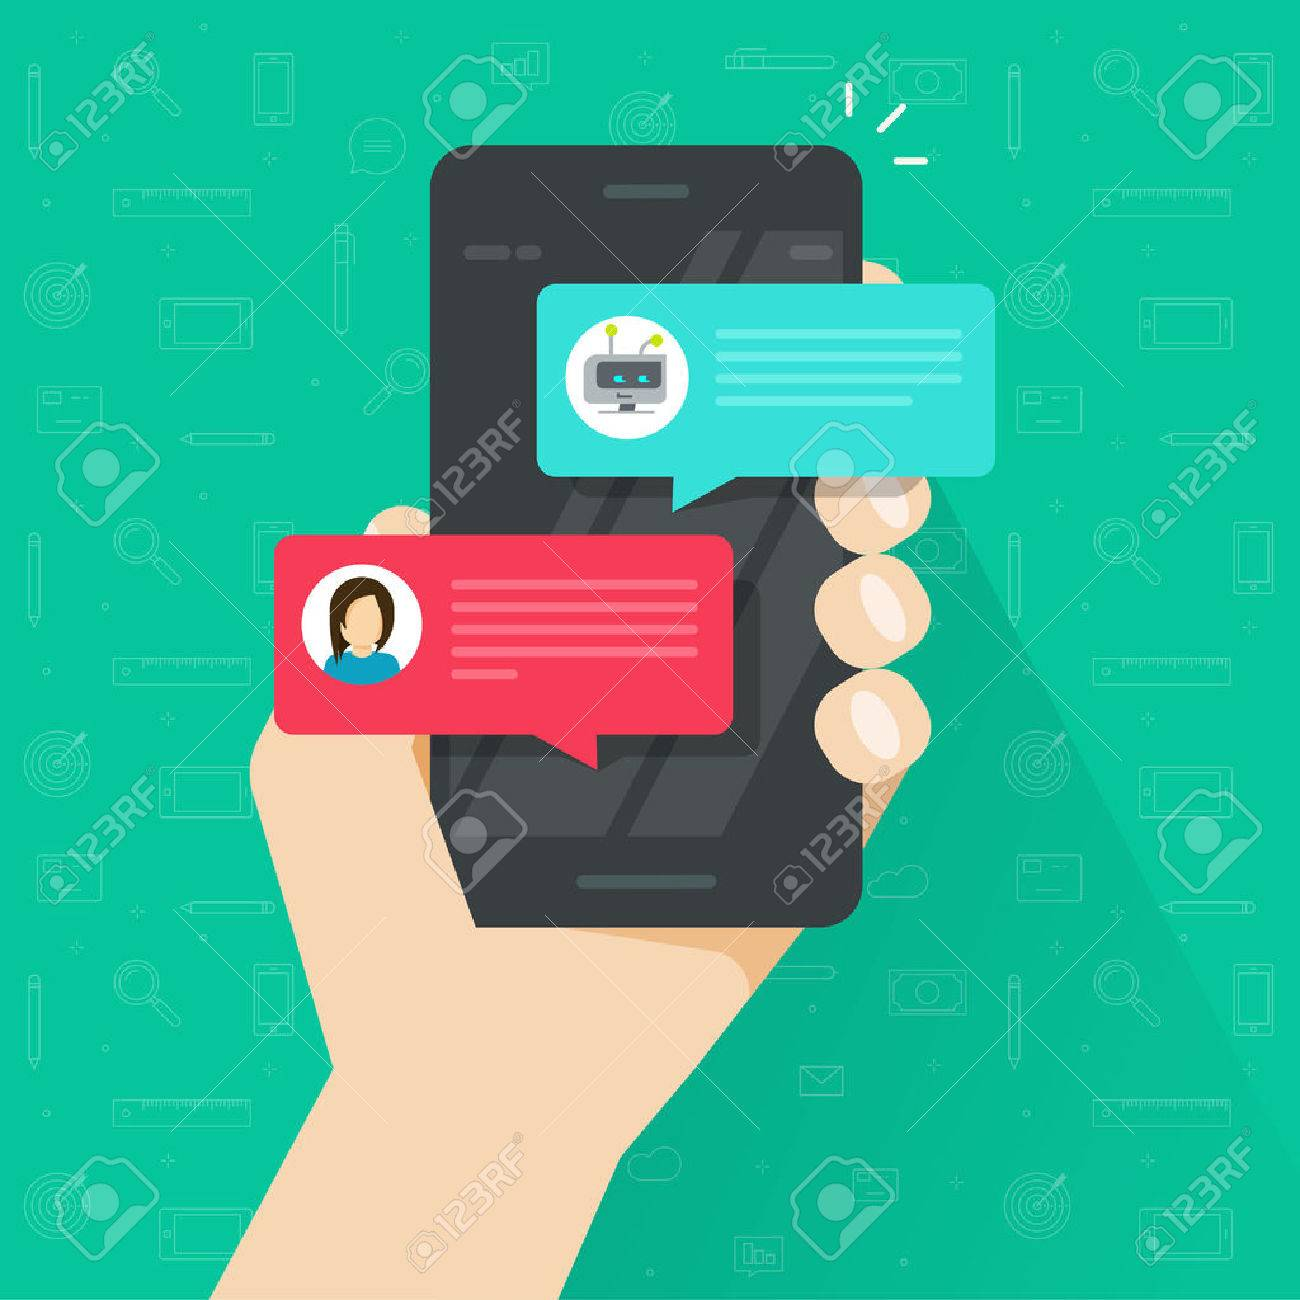 Person chatting with chatbot in mobile phone vector illustration, flat cartoon smartphone with chat bot discussion, cellphone messenger with chatbot service, communication technology - 79320228